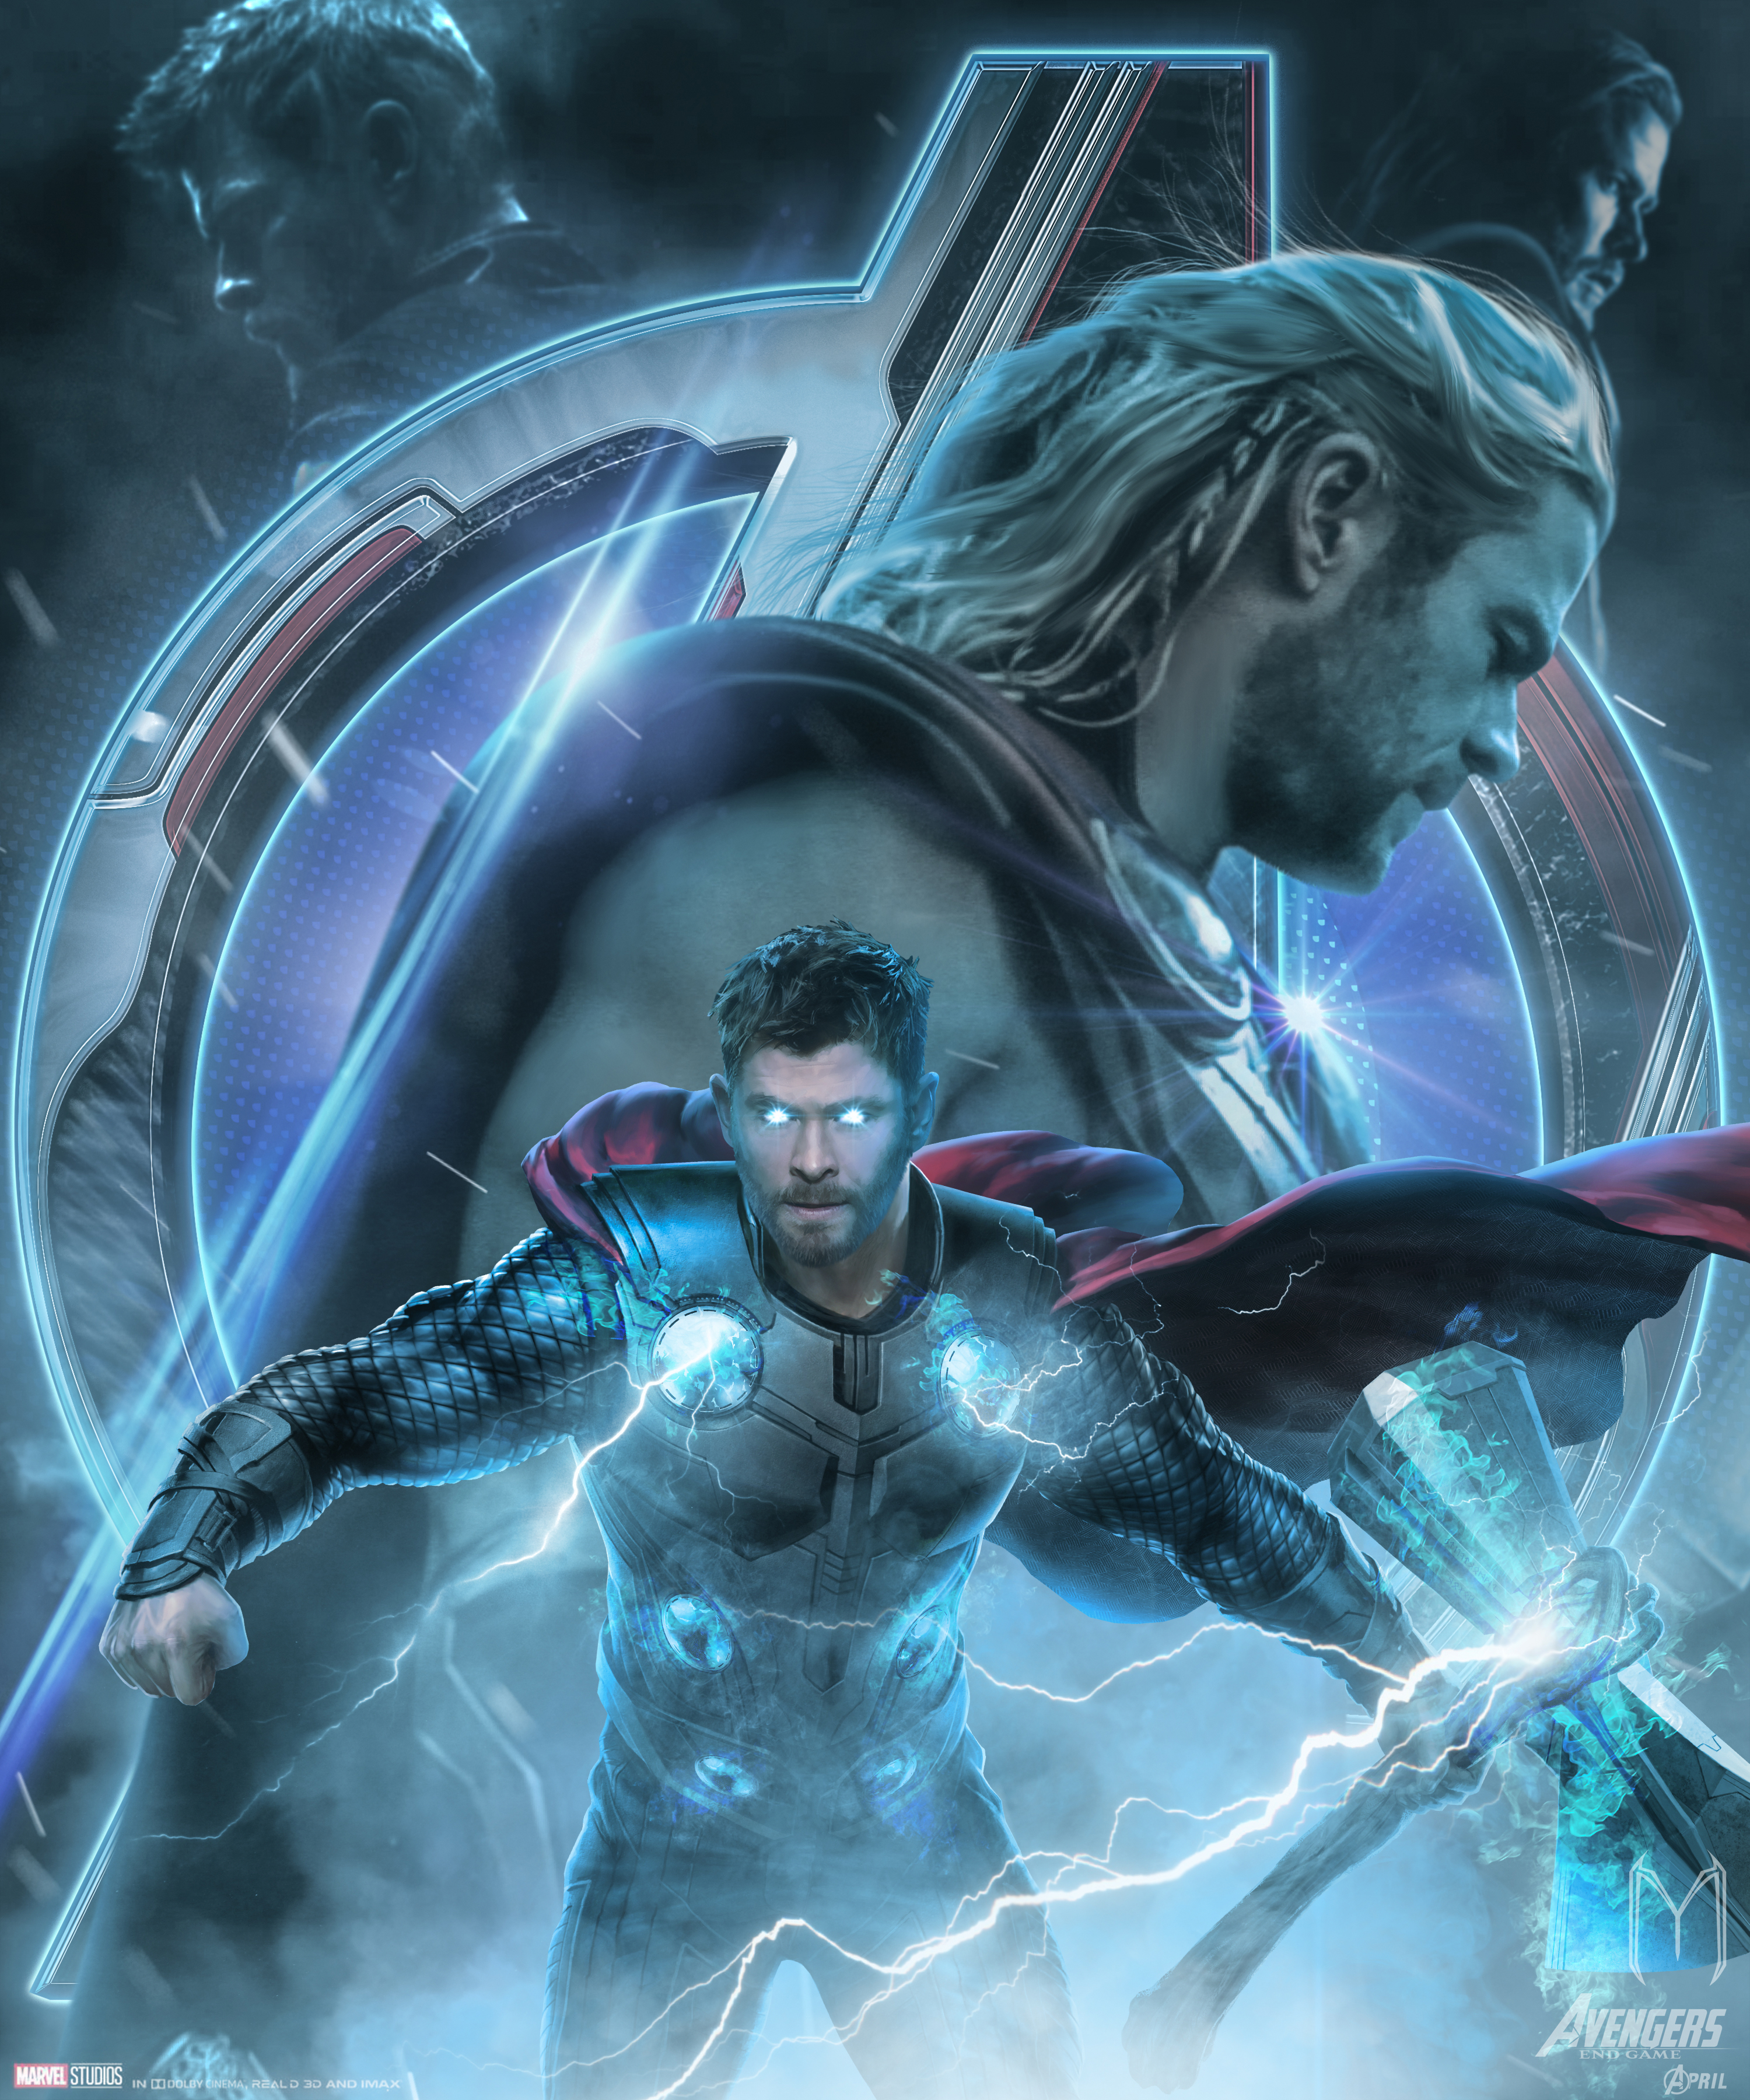 Avengers Endgame Thor Poster Artwork Wallpaper HD Movies 4K 3000x3600